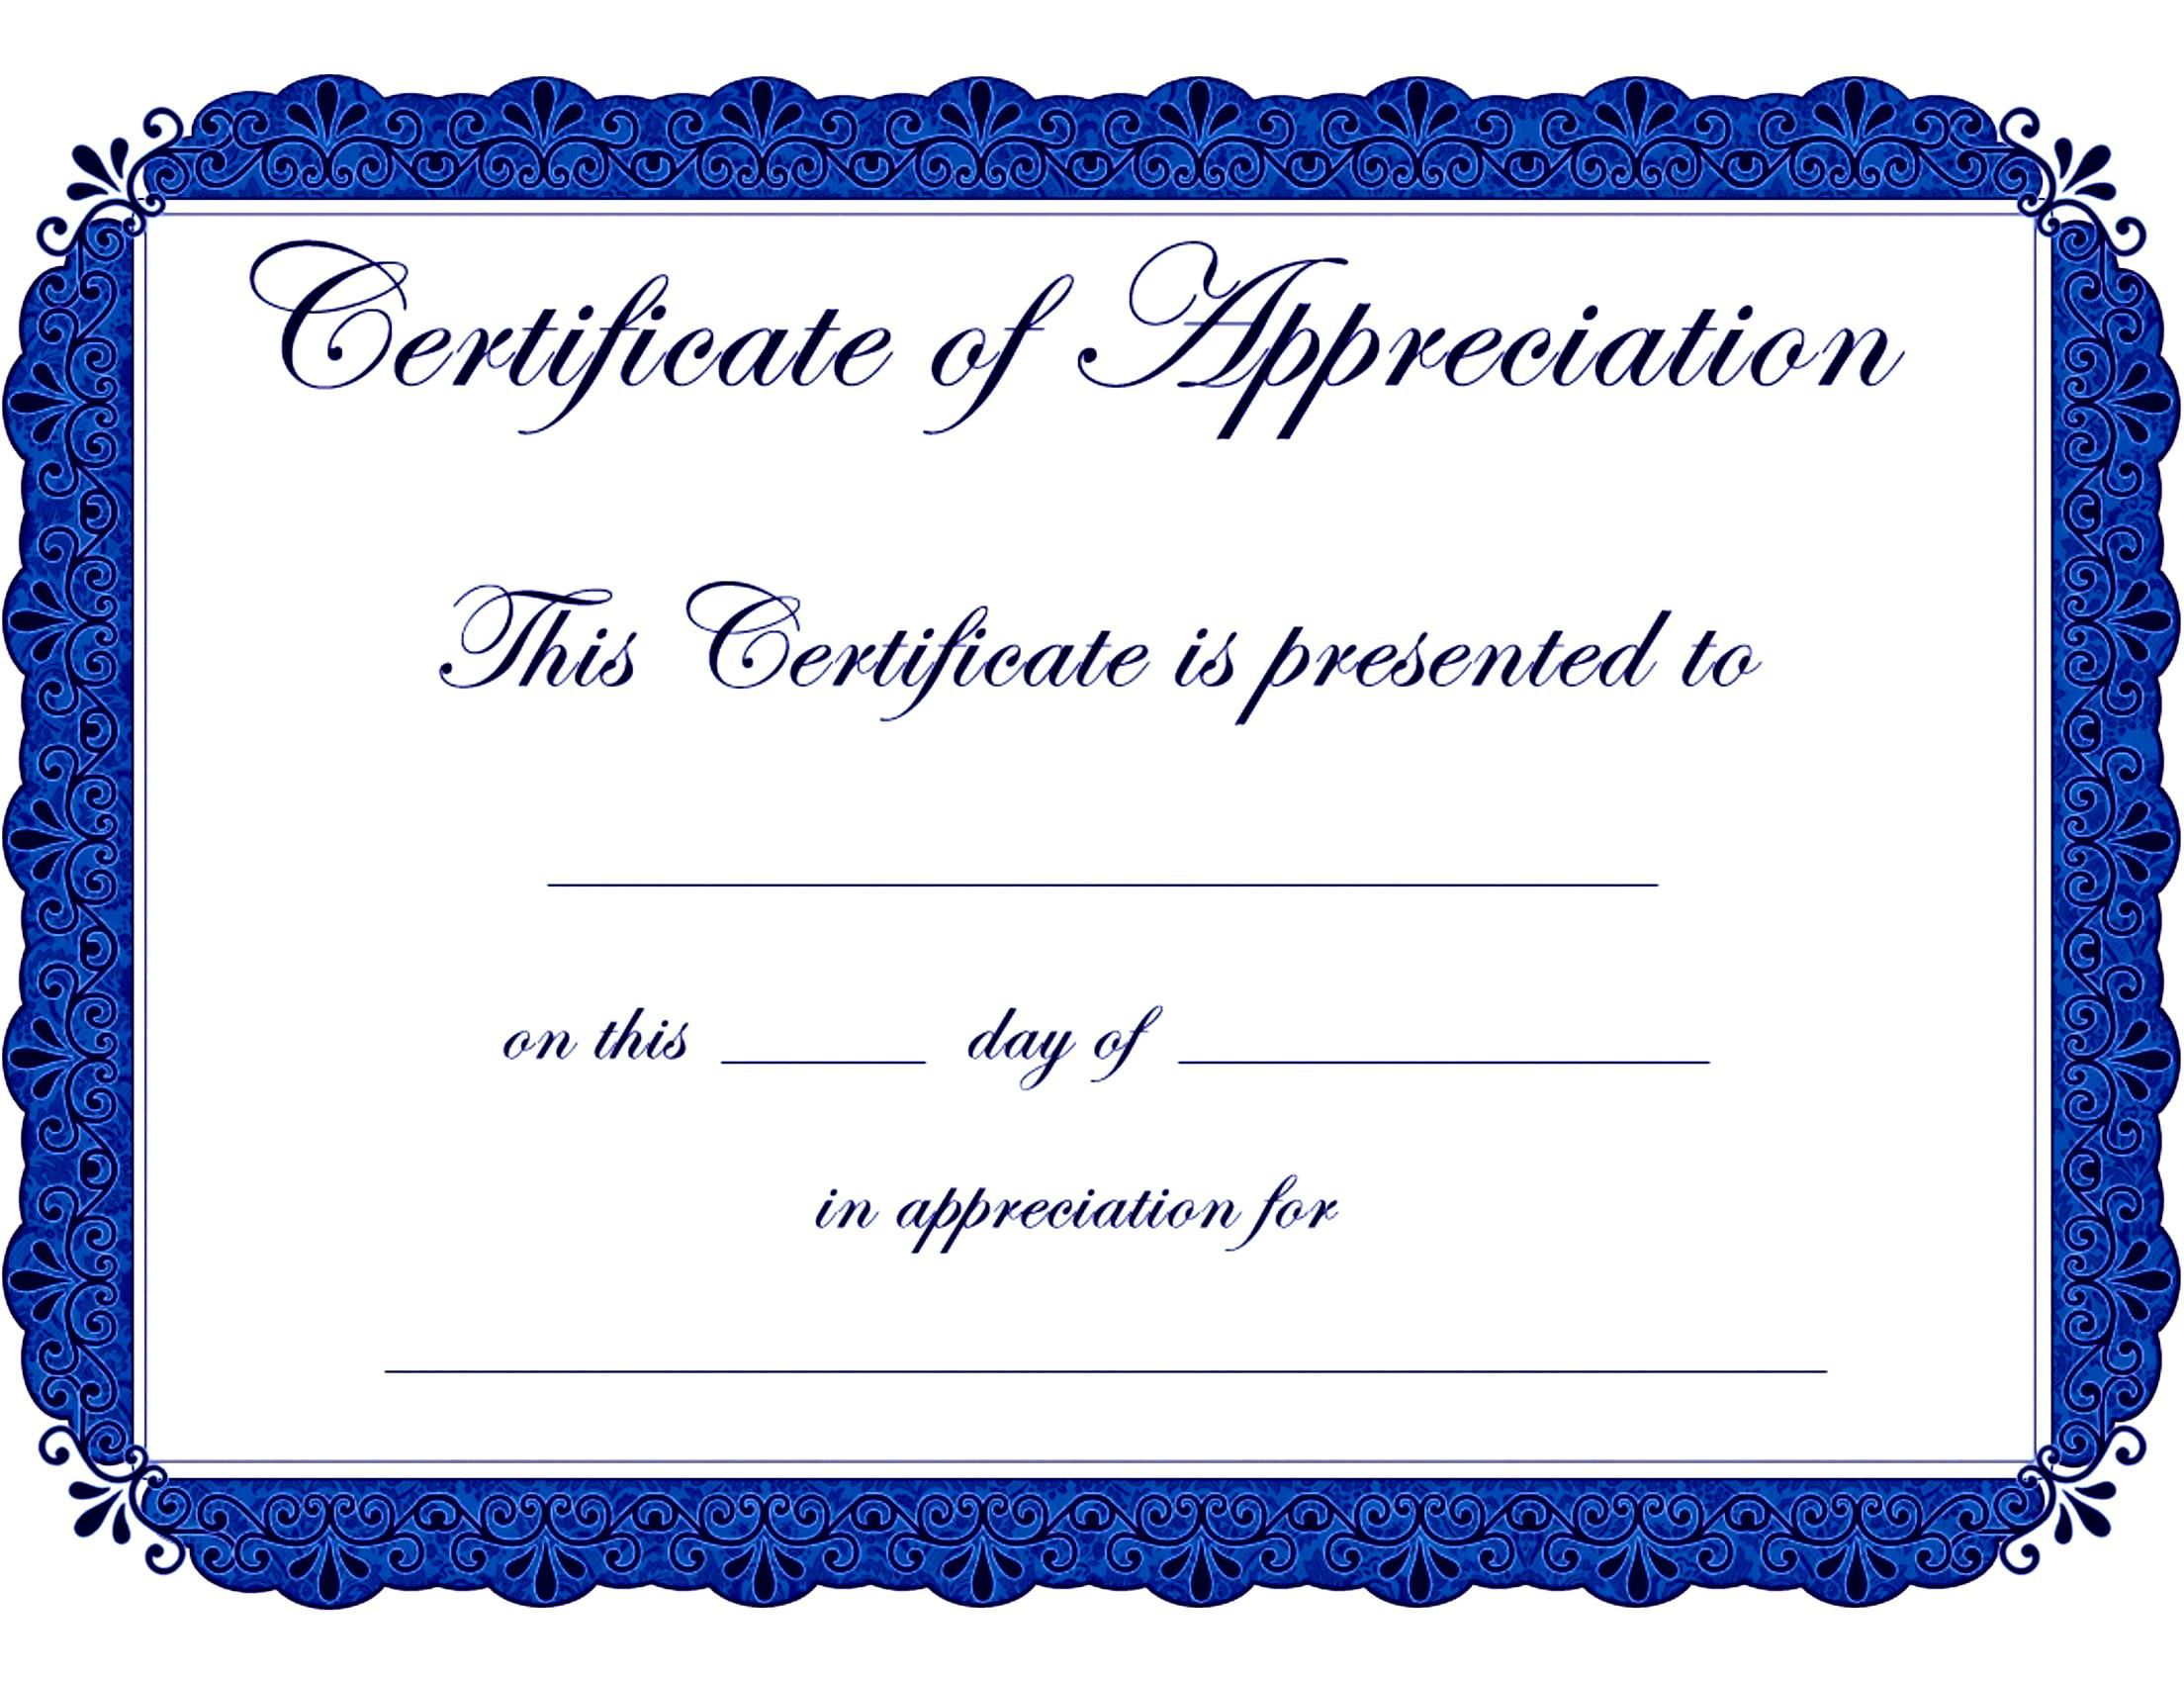 Appealing award template word for certificate of appreciation with appealing award template word for certificate of appreciation with blue color theme and floral motif yelopaper Choice Image